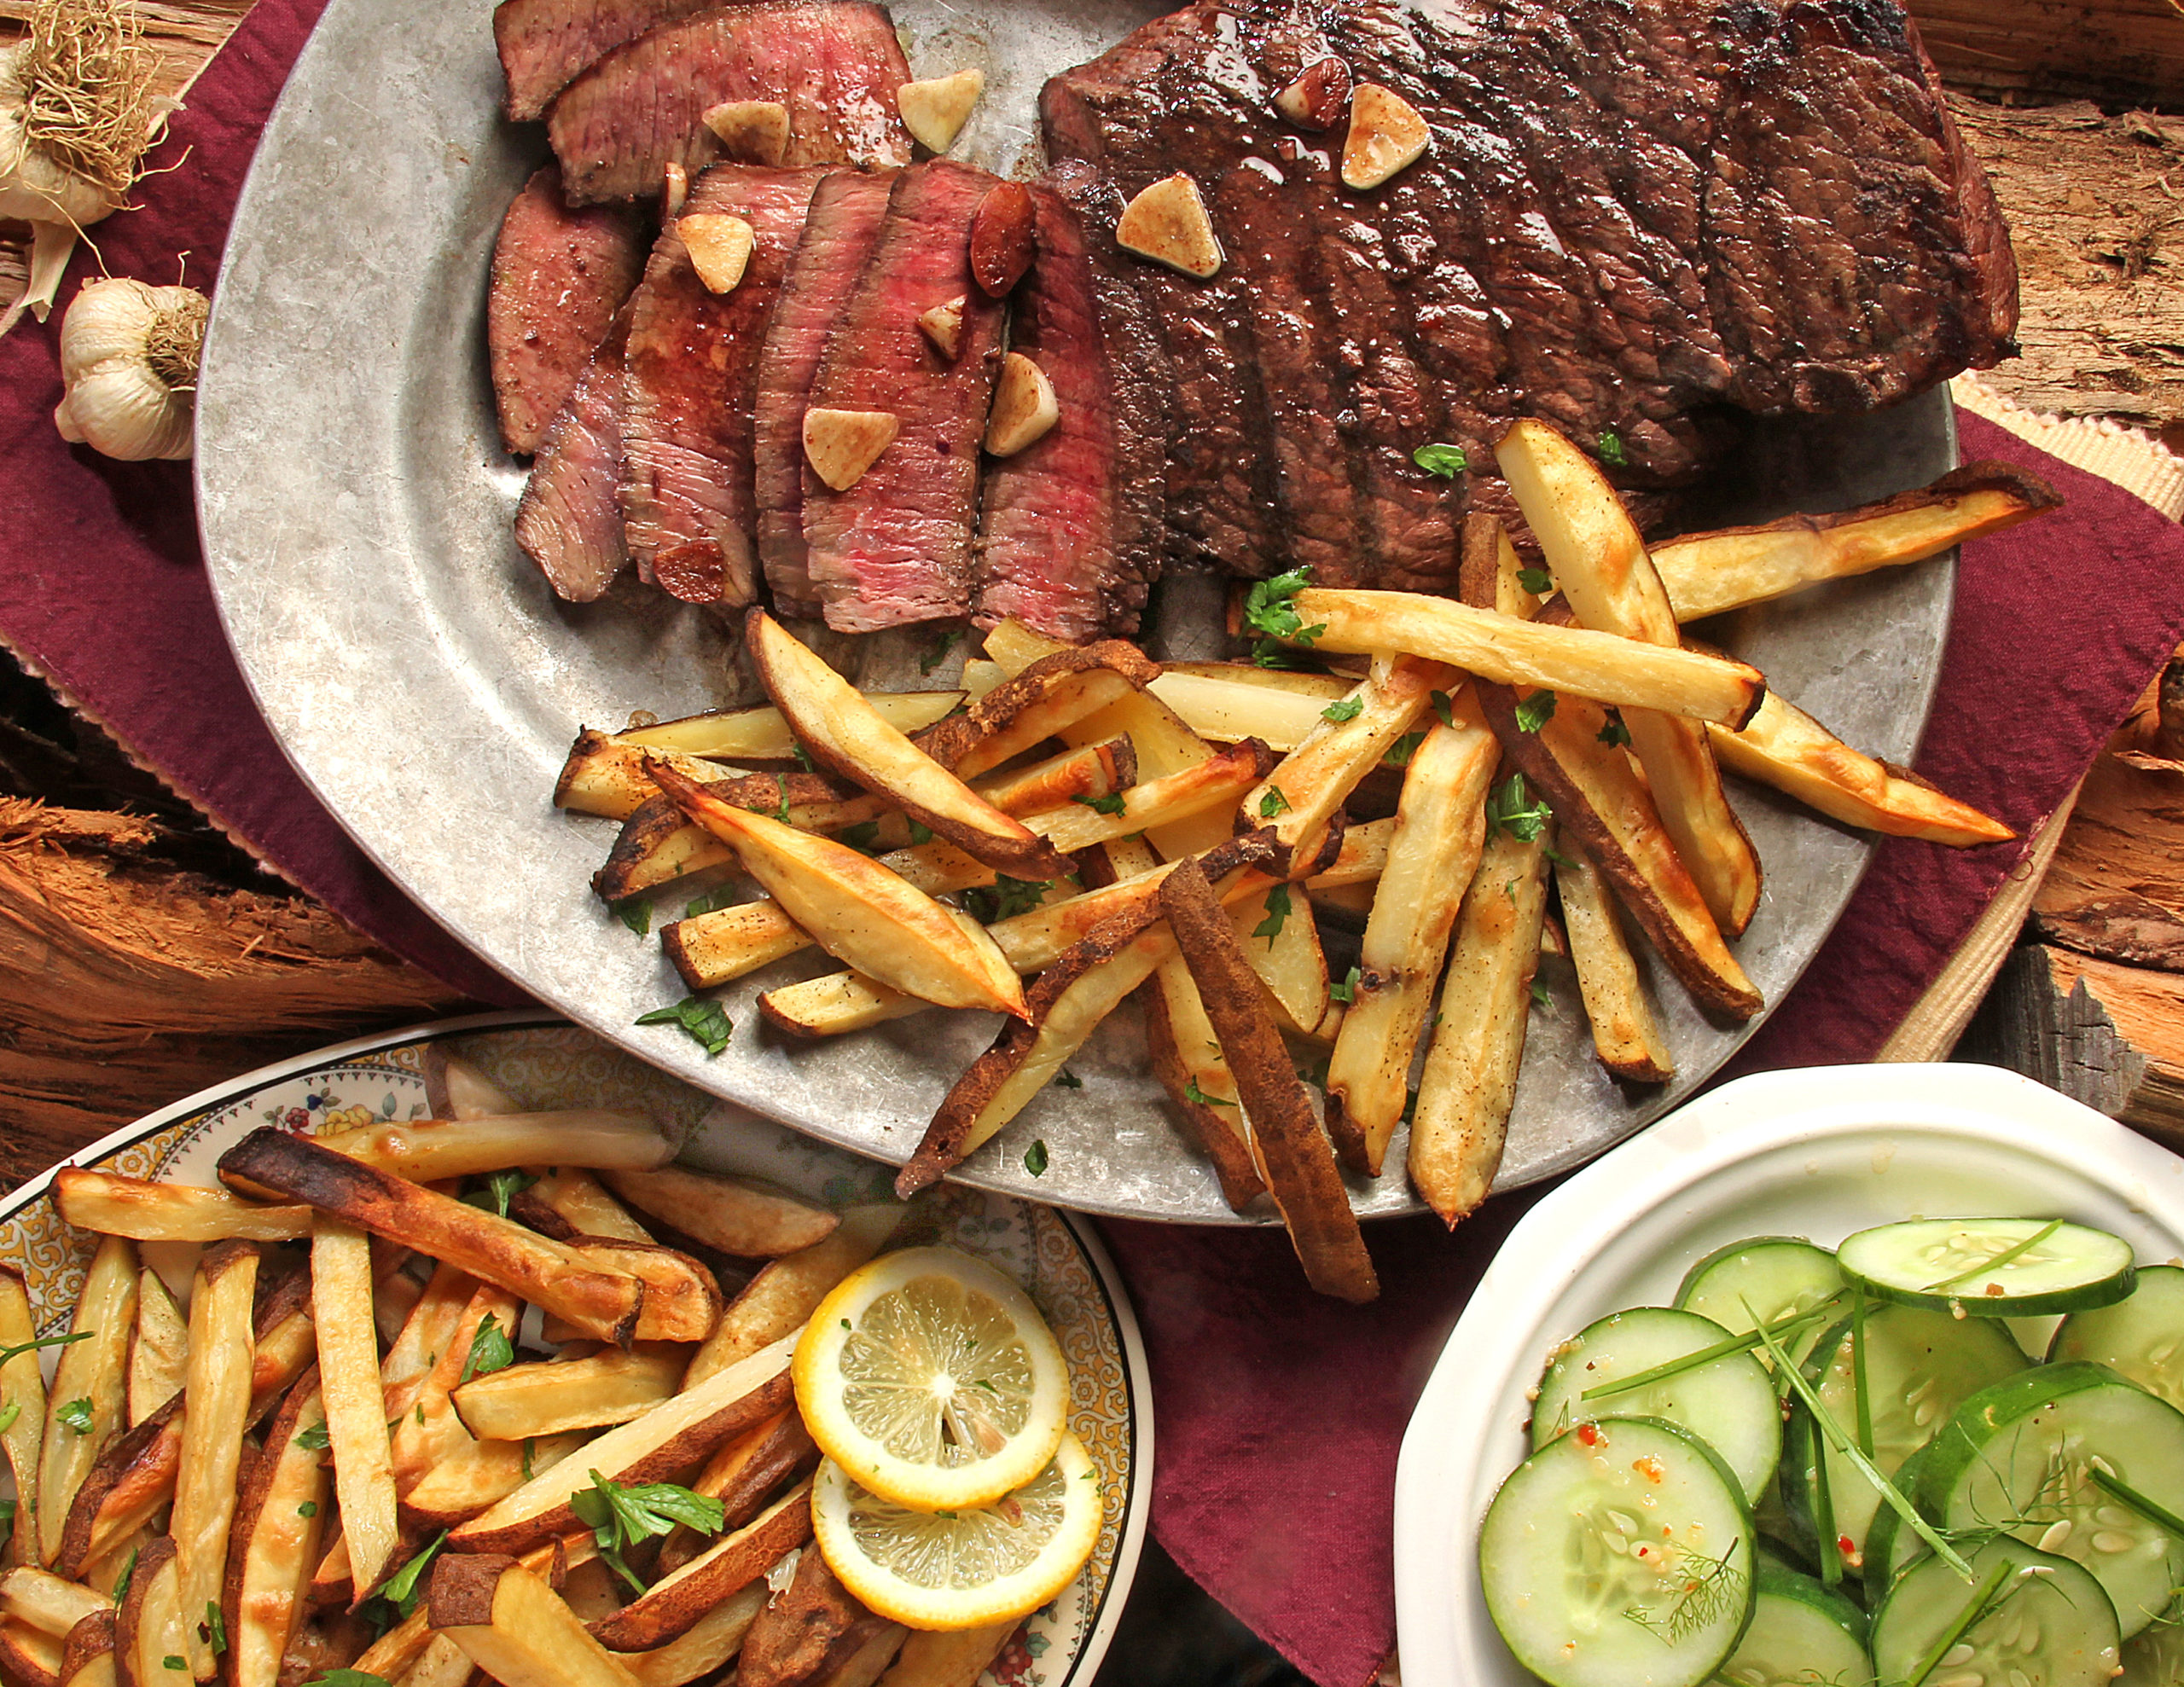 Photo of a steak and french fries on a glass plate.